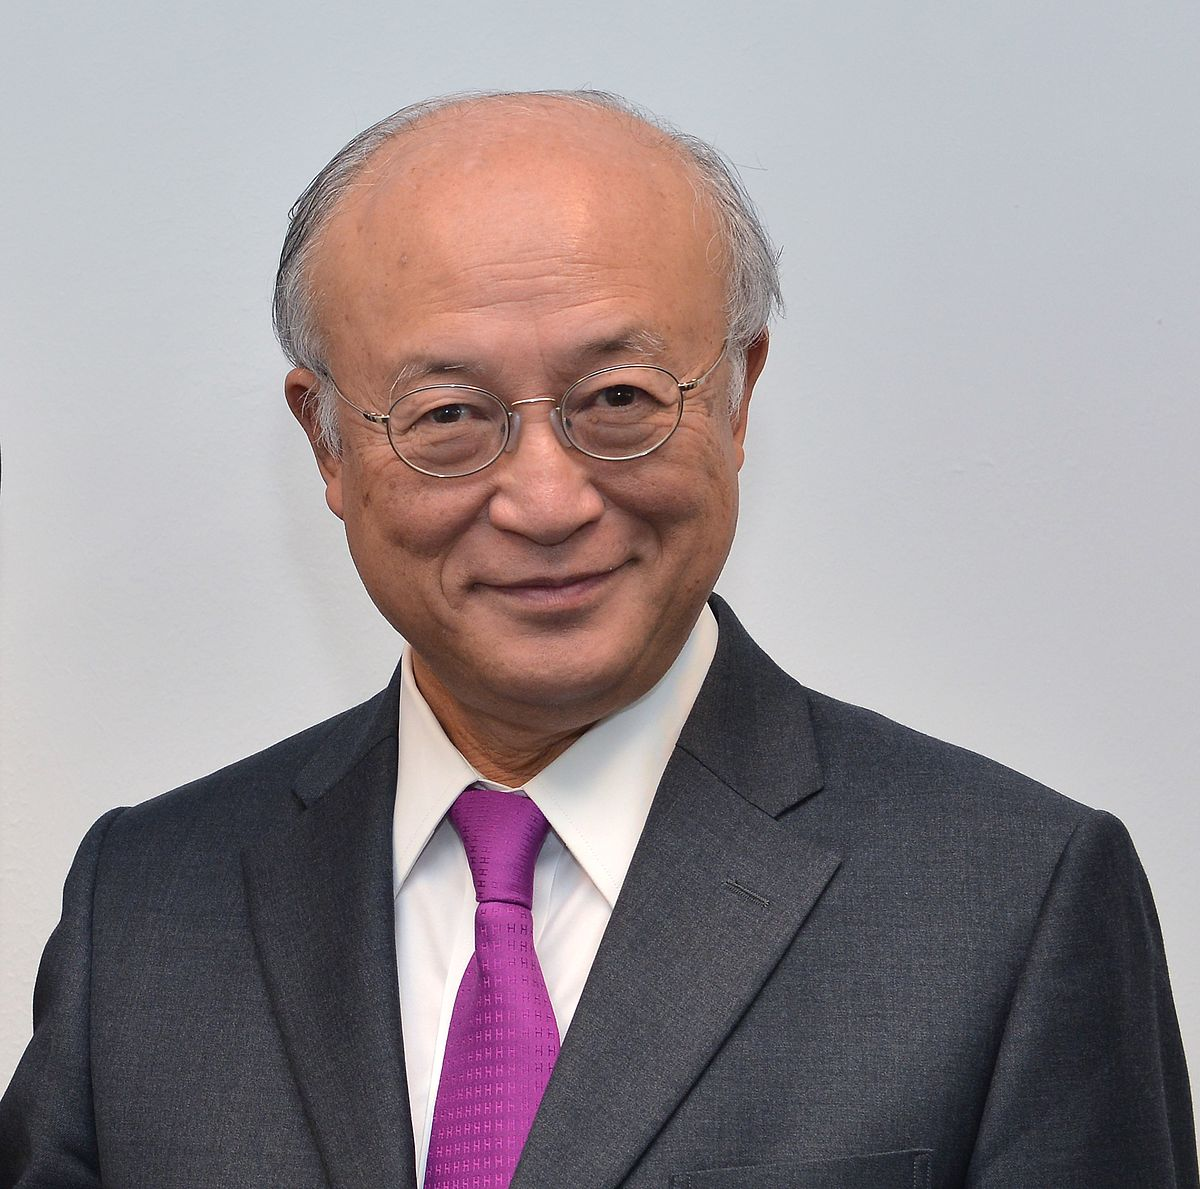 Yukiya Amano was a Japanese diplomat and the Director General of the International Atomic Energy Agency.